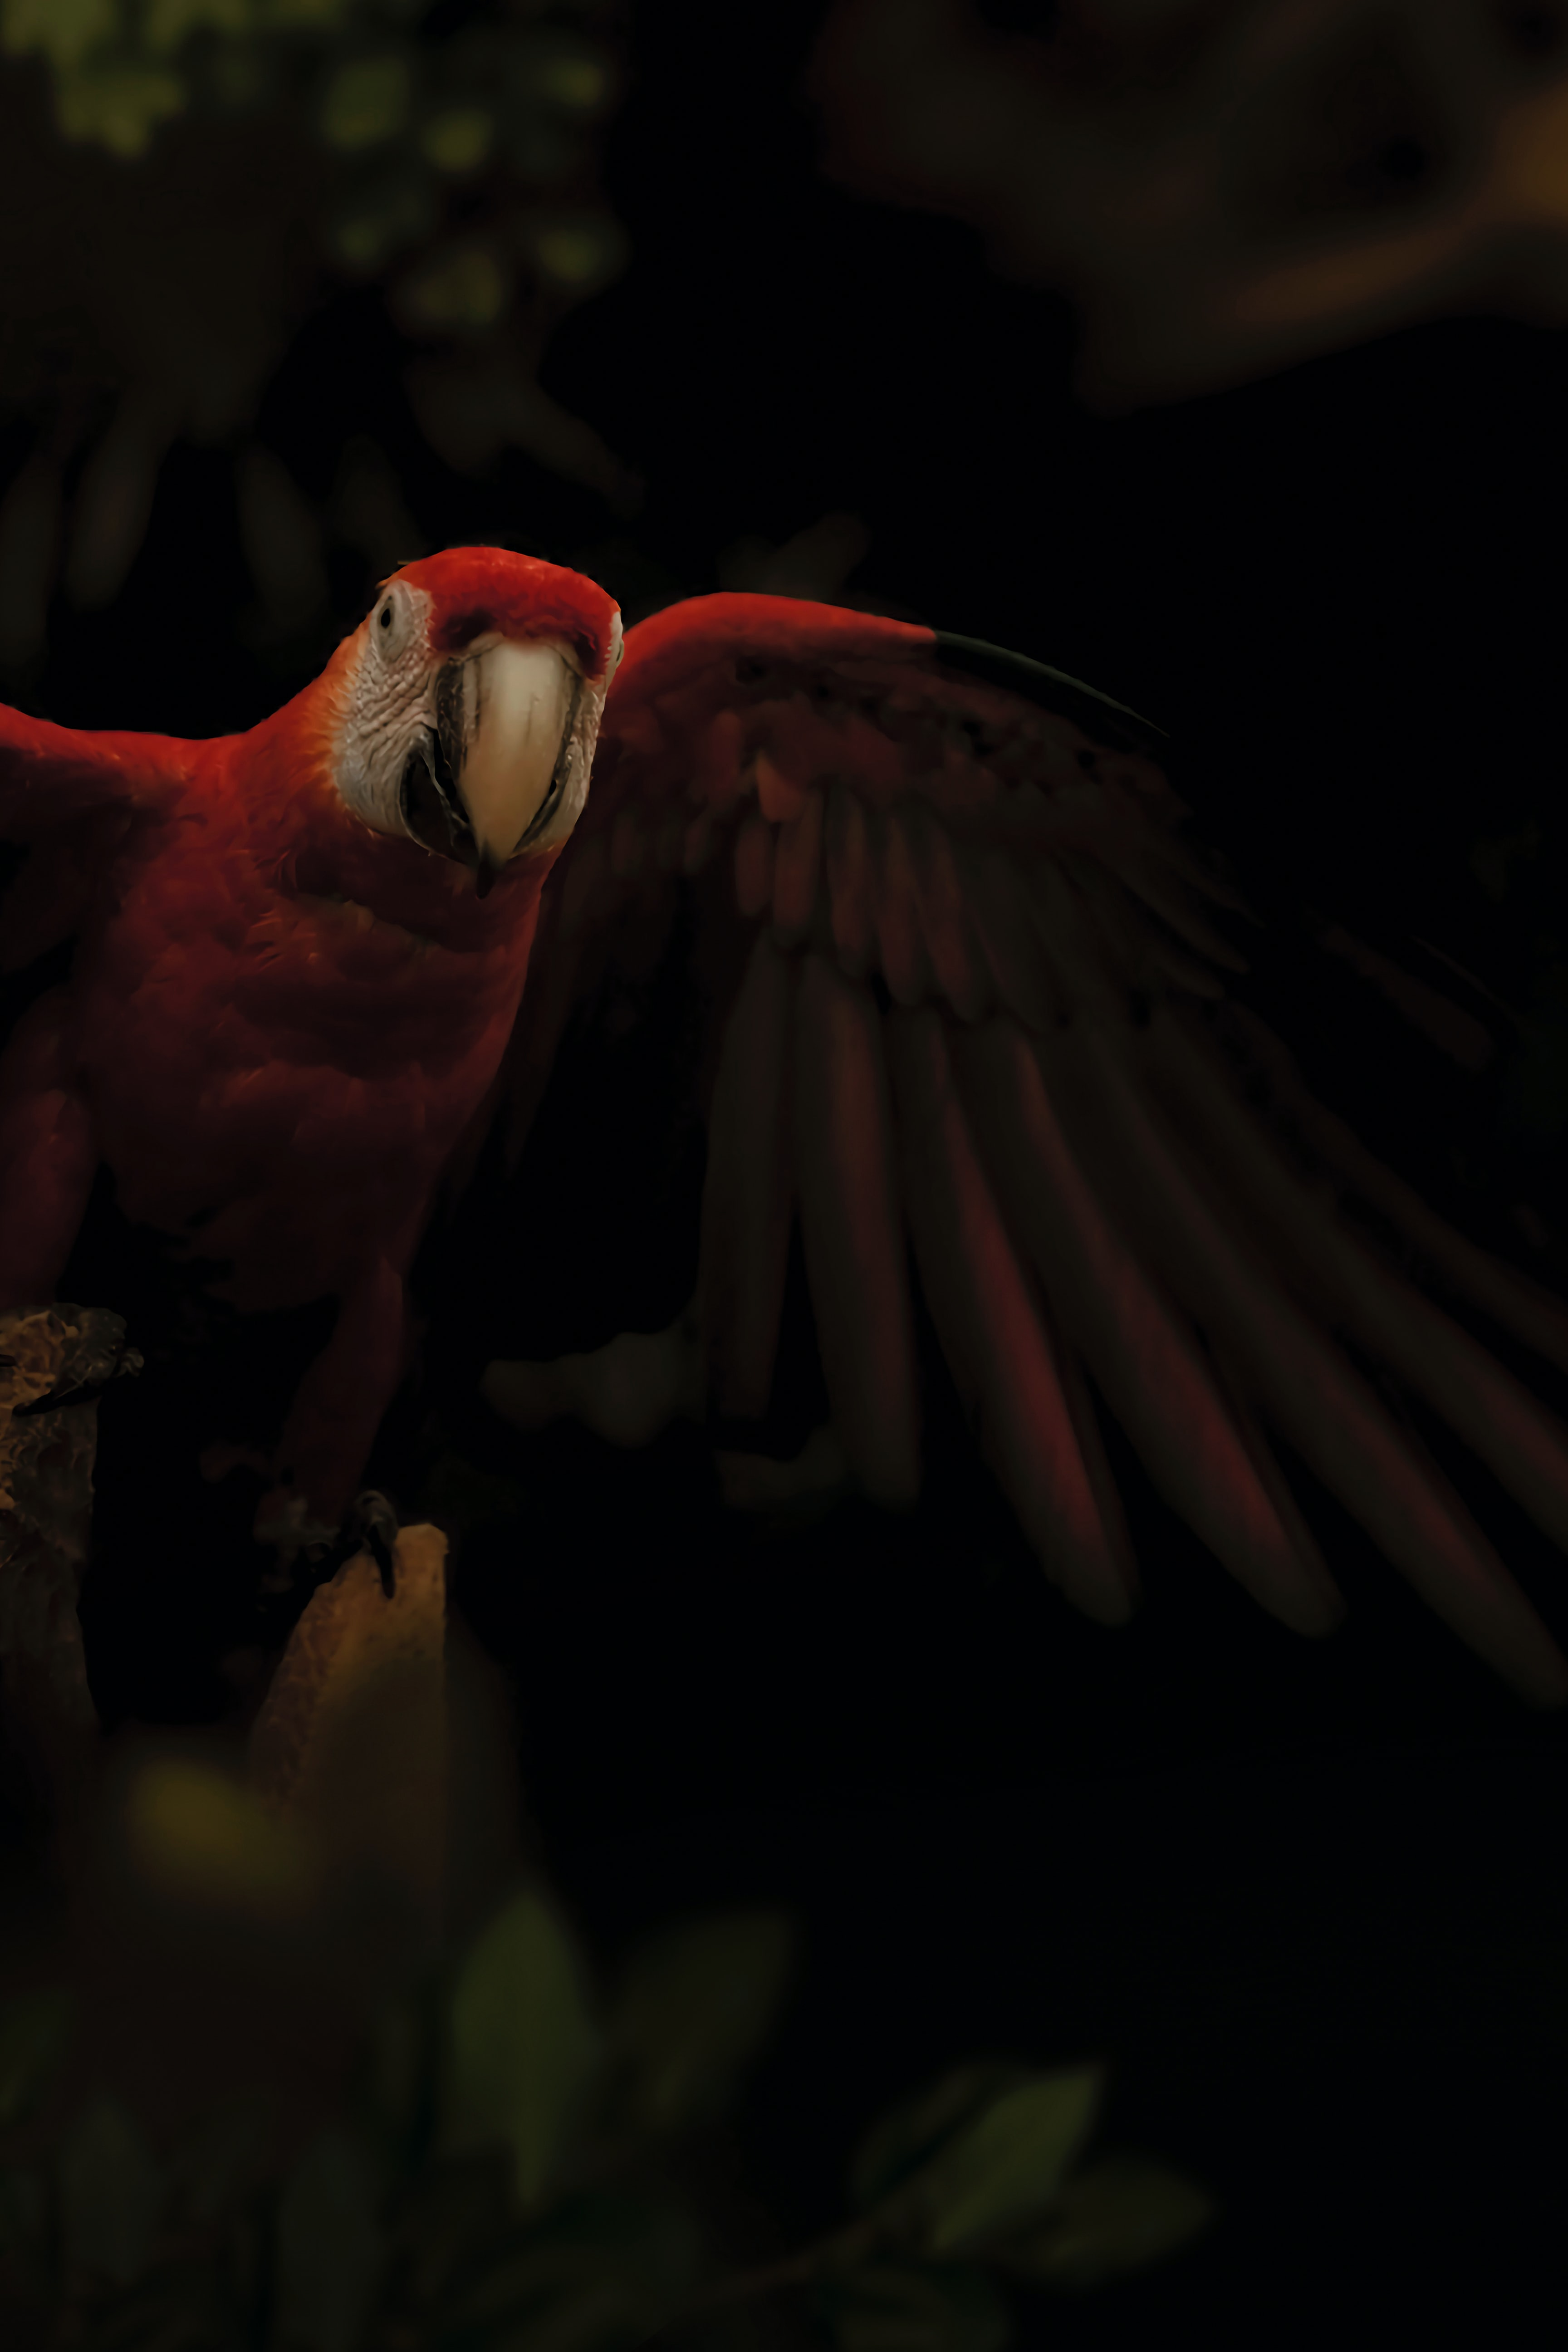 150585 download wallpaper Animals, Macaw, Parrots, Bird, Multicolored, Motley, Dark screensavers and pictures for free